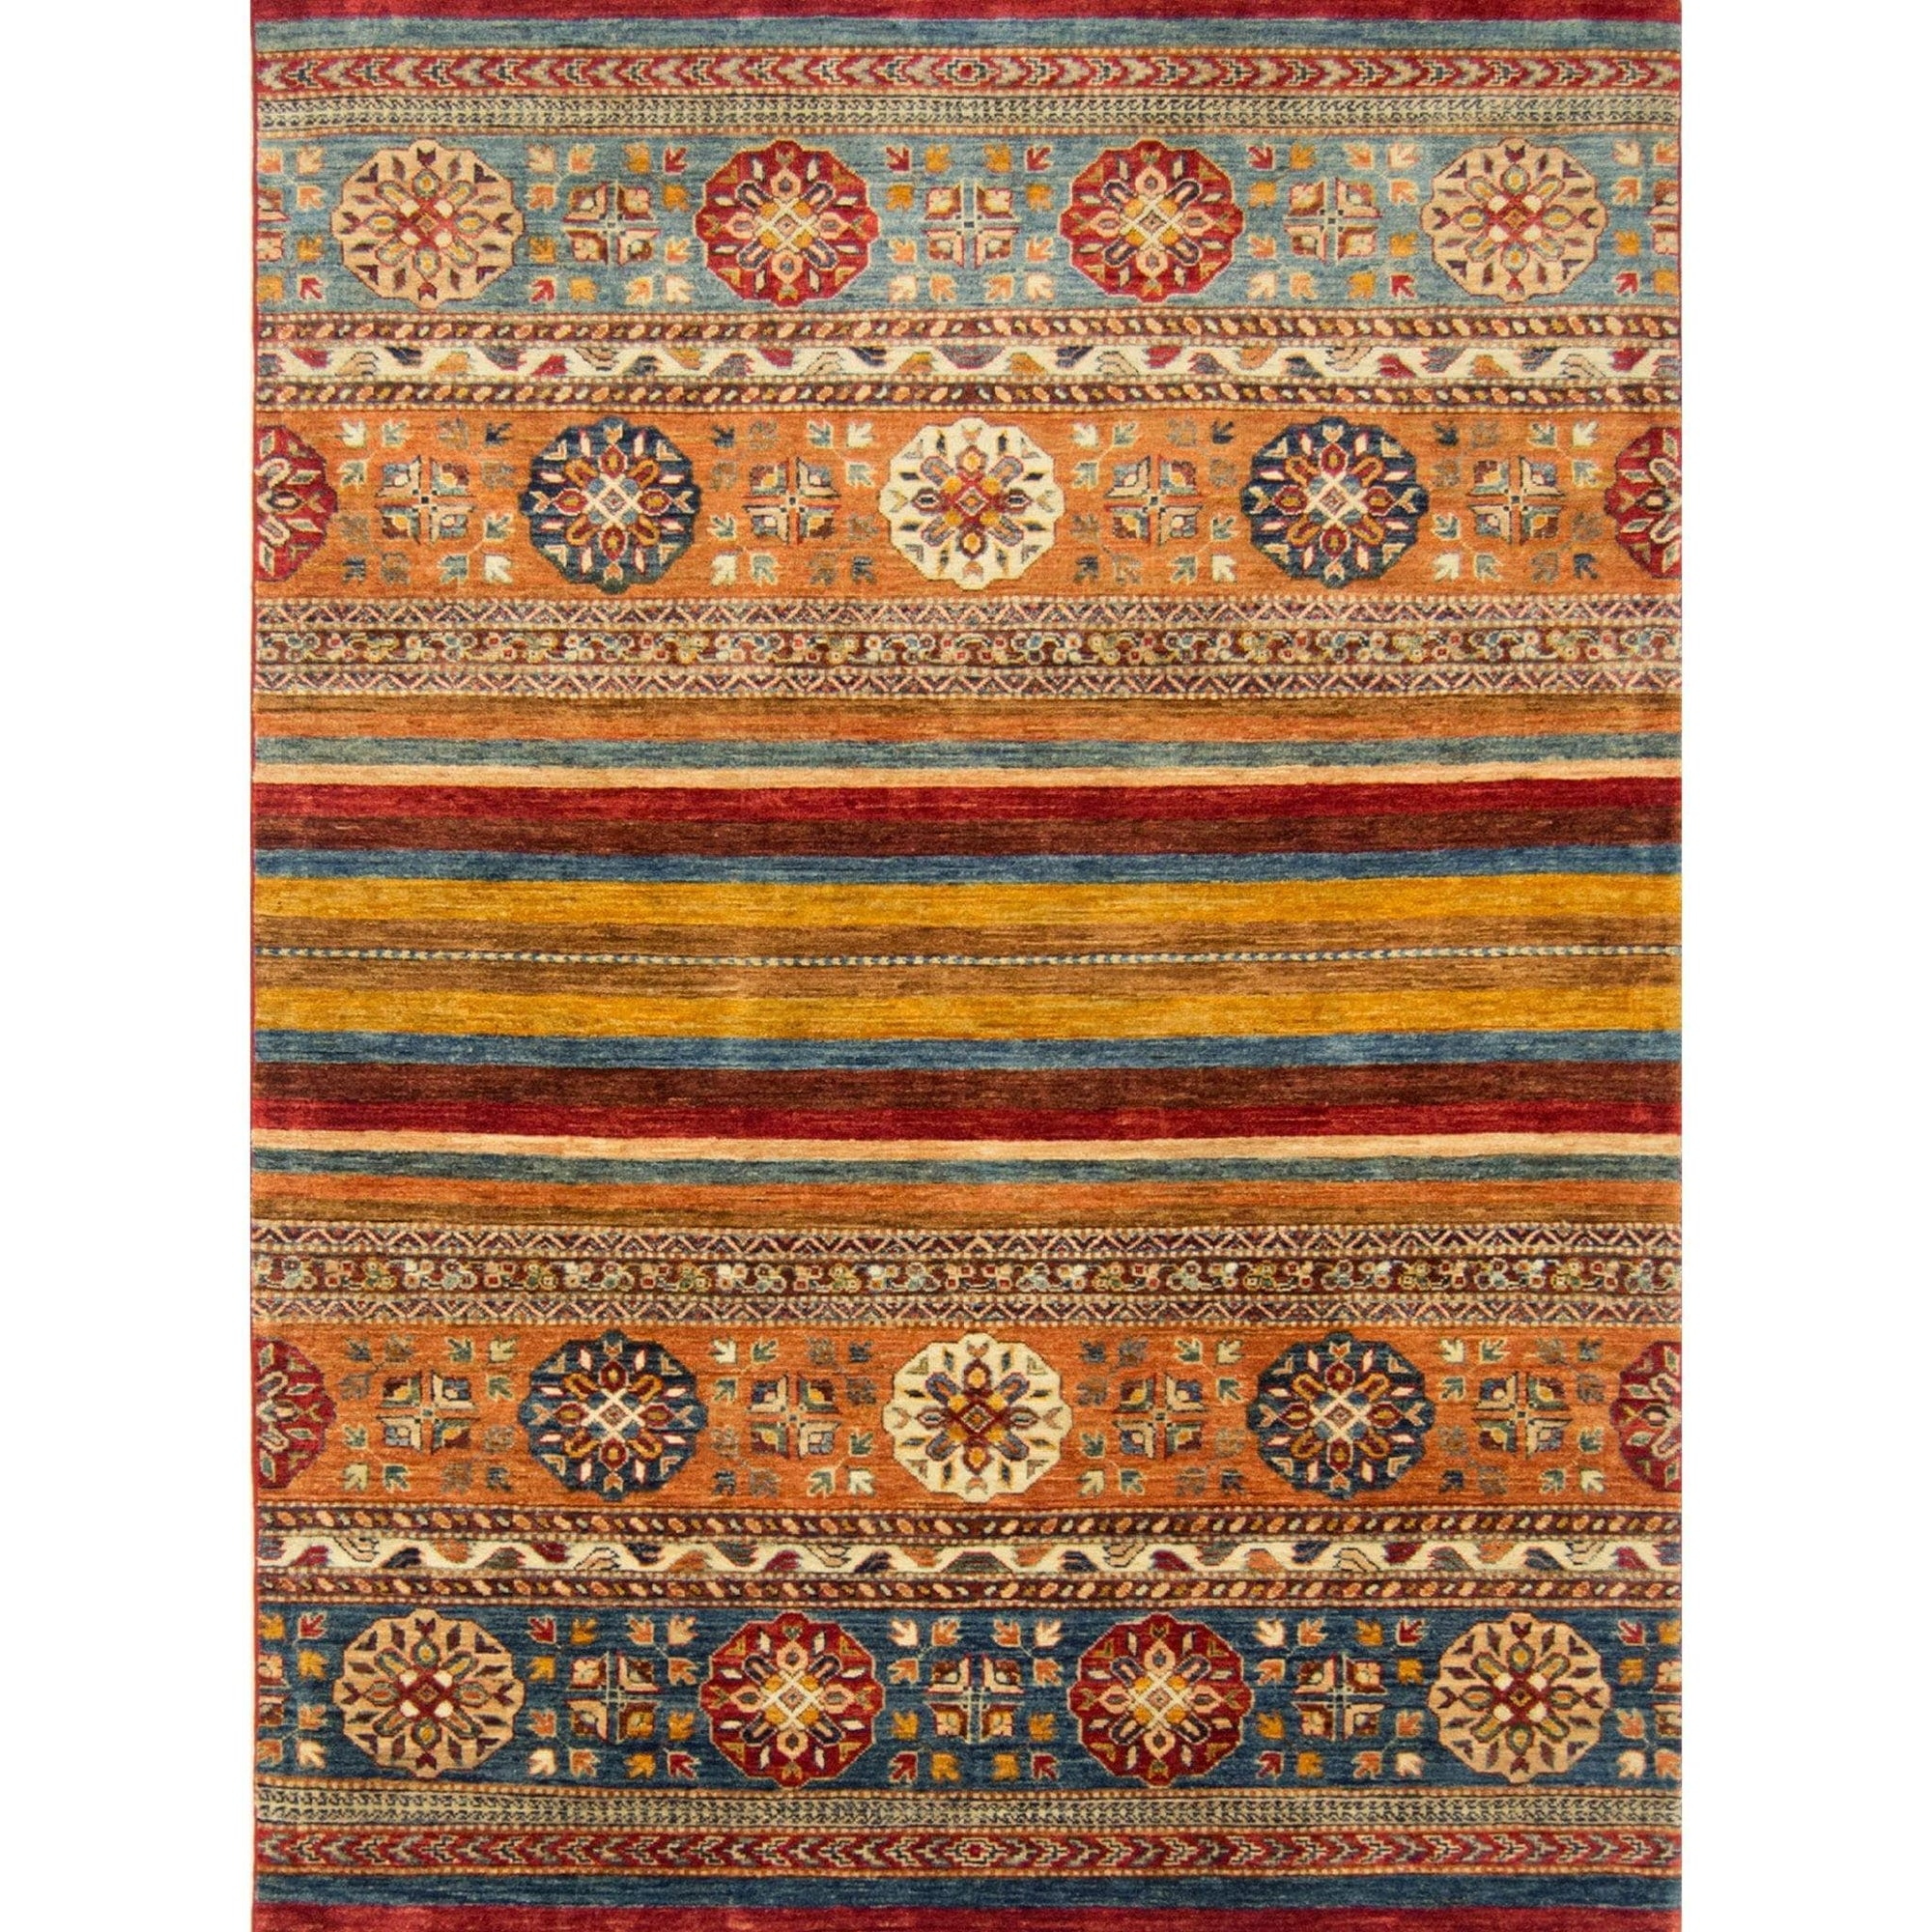 Hand-knotted Wool Khorjin Rug 151cm x 214cm Persian-Rug | House-of-Haghi | NewMarket | Auckland | NZ | Handmade Persian Rugs | Hand Knotted Persian Rugs